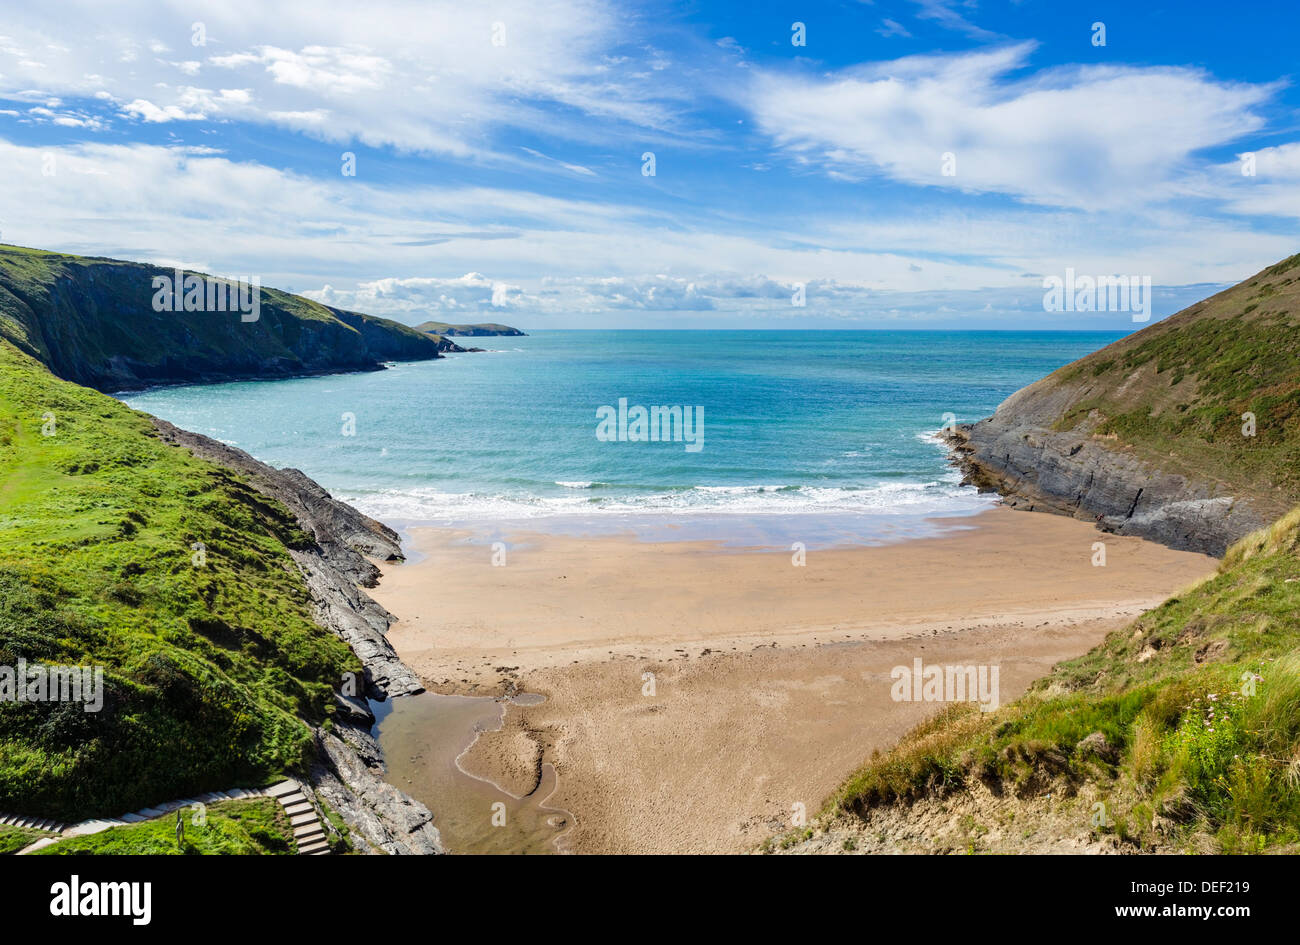 The award winning beach at Mwnt, near Cardigan, Ceredigion, Wales, UK Stock Photo